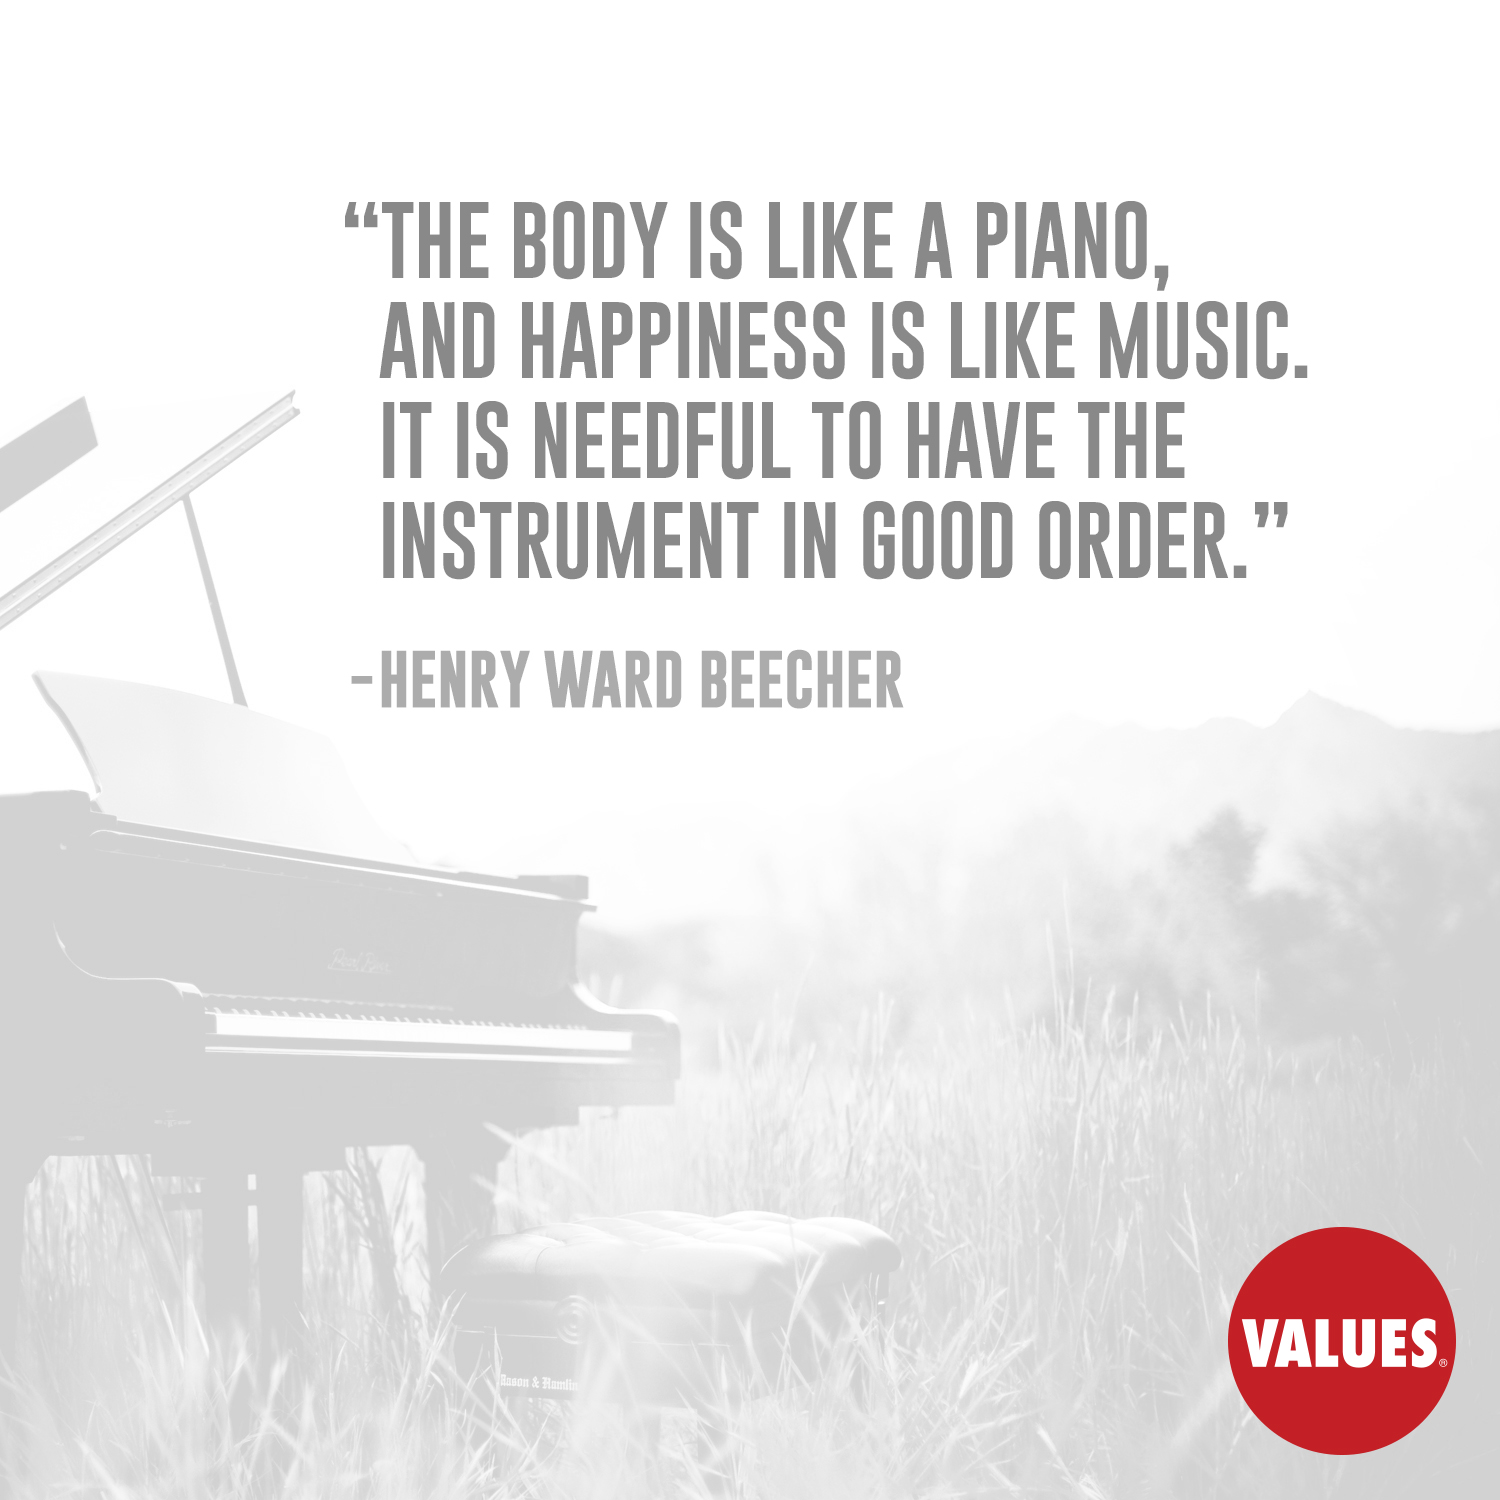 The body is like a piano, and happiness is like music. It is needful to have the instrument in good order. —Henry Ward Beecher